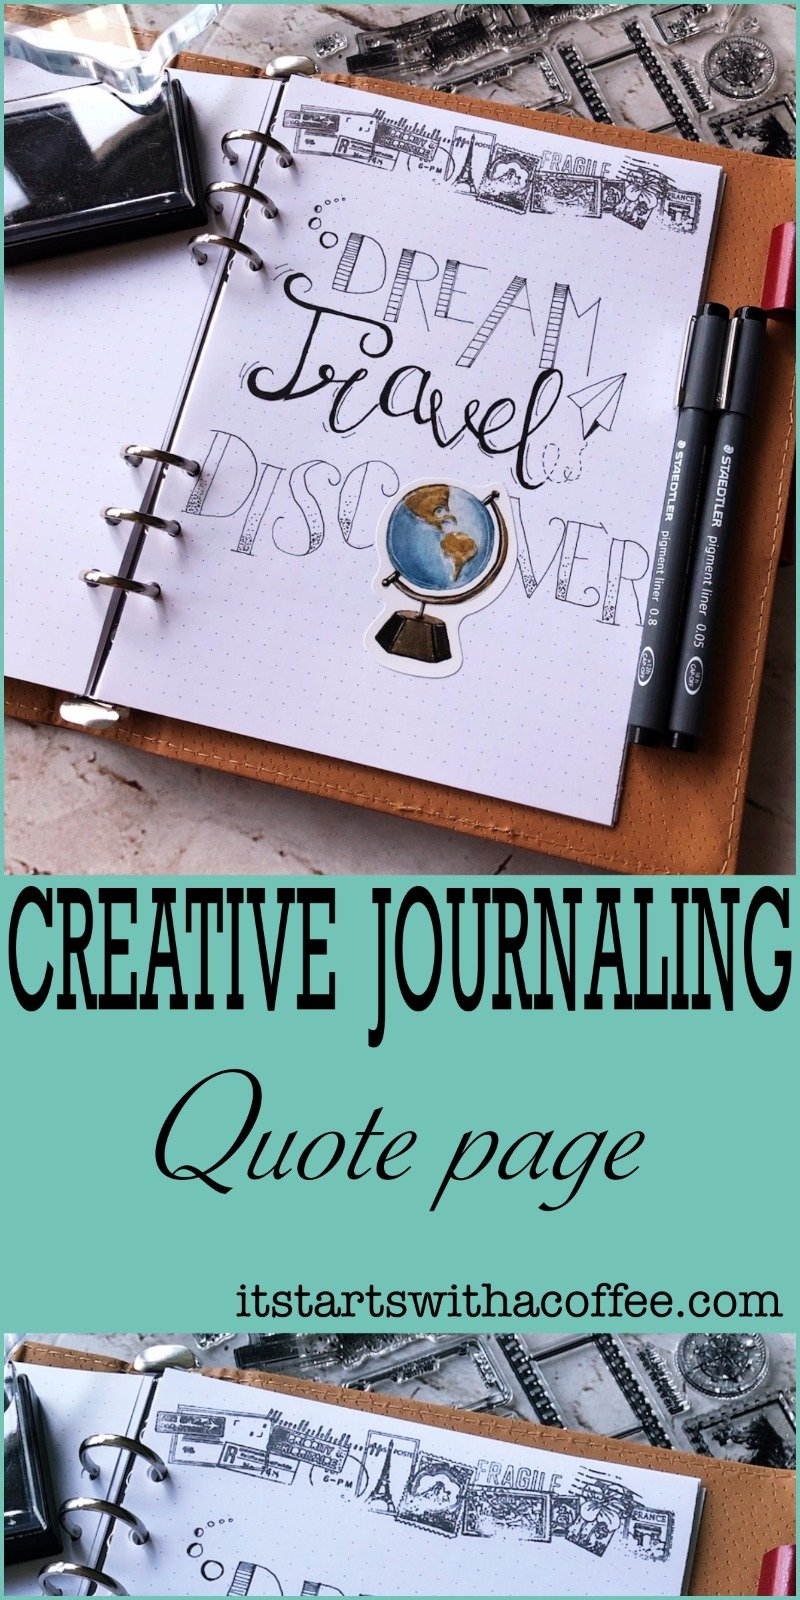 Creative journaling - Quote #2 - itstartswithacoffee.com #creativejournaling #bulletjournaling #planner #quote #quotes #travel